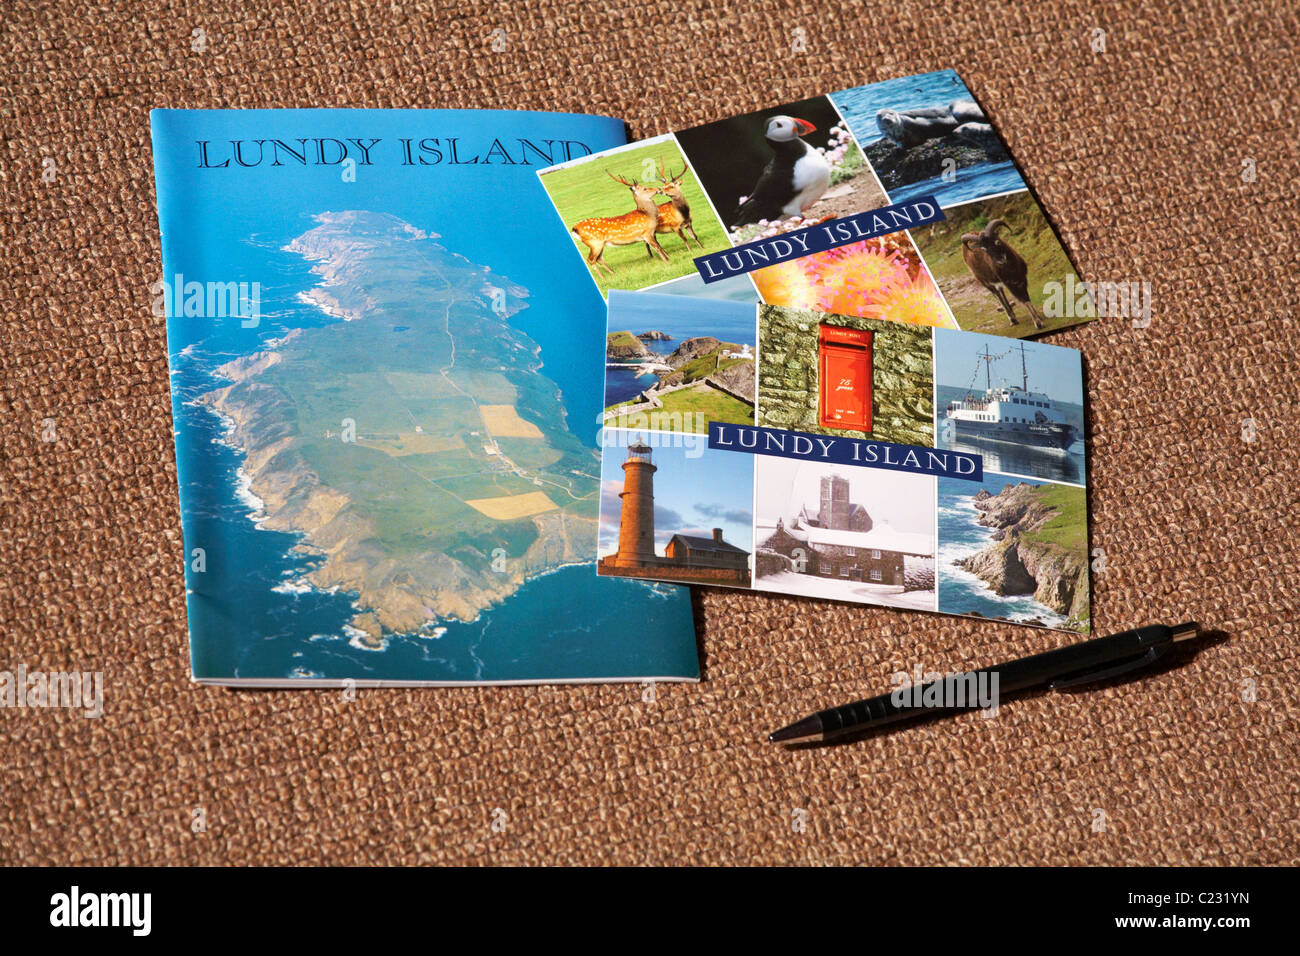 Lundy Island postcards and souvenir book in March - Stock Image